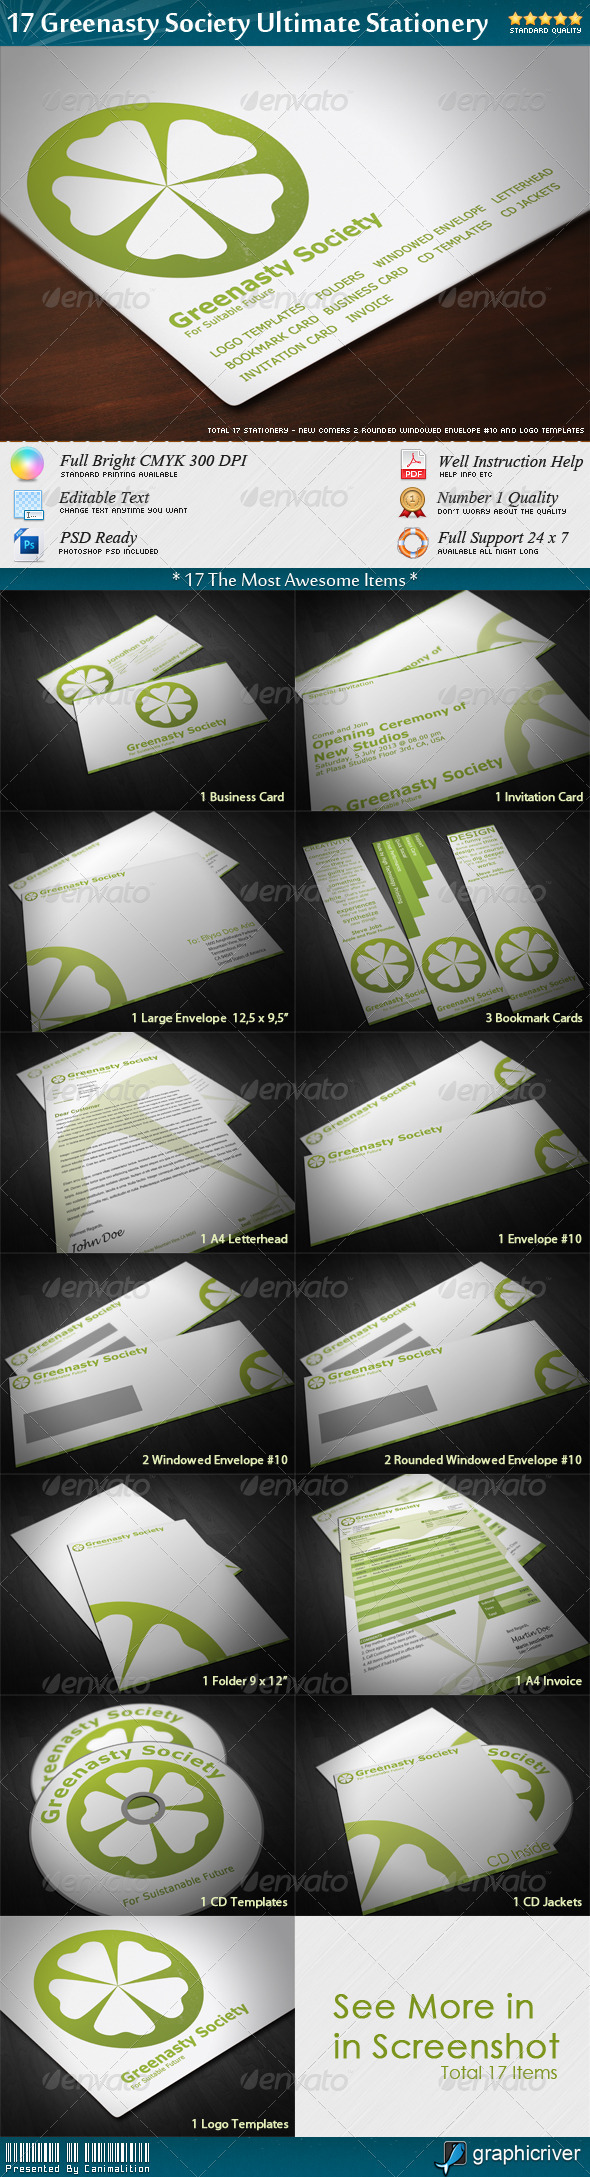 17 Greenasty Society Ultimate Stationery - Stationery Print Templates